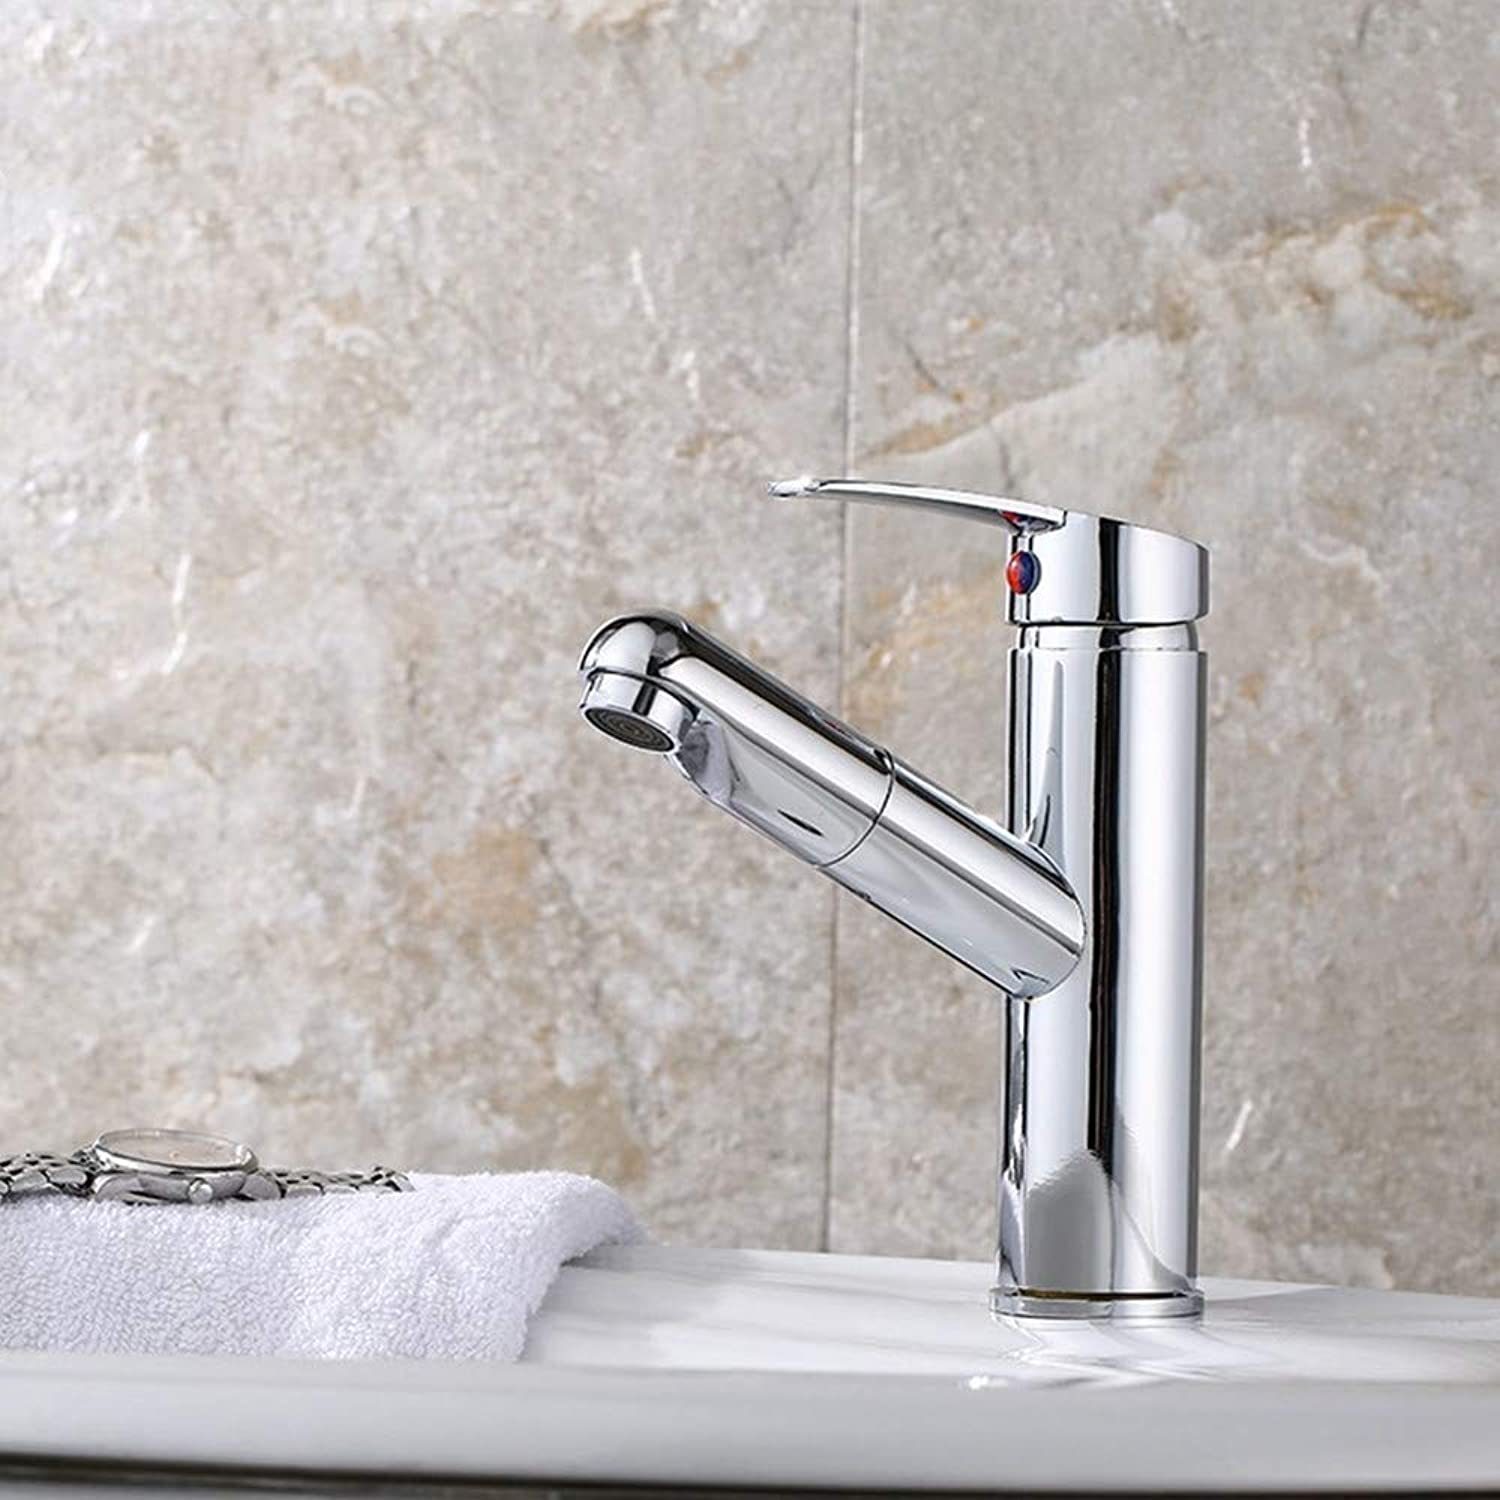 Water Tap Black Bronze Paint Bathroom Washbasin Washbasin Household Faucet Hot and Cold Expansion Basin Faucet, B